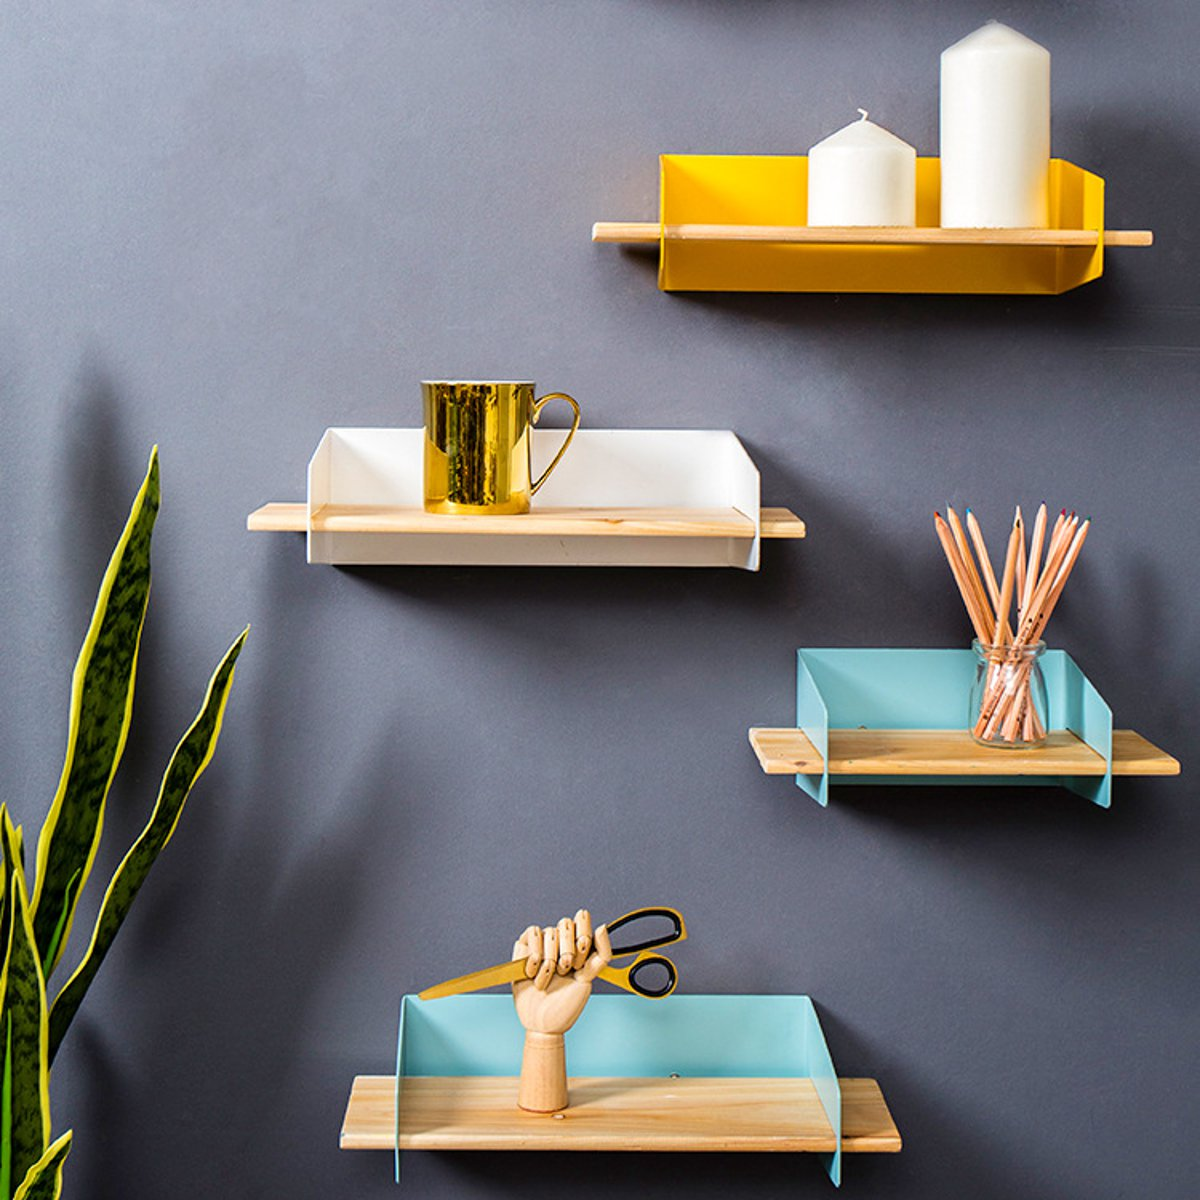 Us 32 34 51 Off 30x15x10cm Wooden Wall Shelf Wall Mounted Storage Rack Organization Bedroom Kitchen Home Decor Room Diy Wall Decoration Holder In